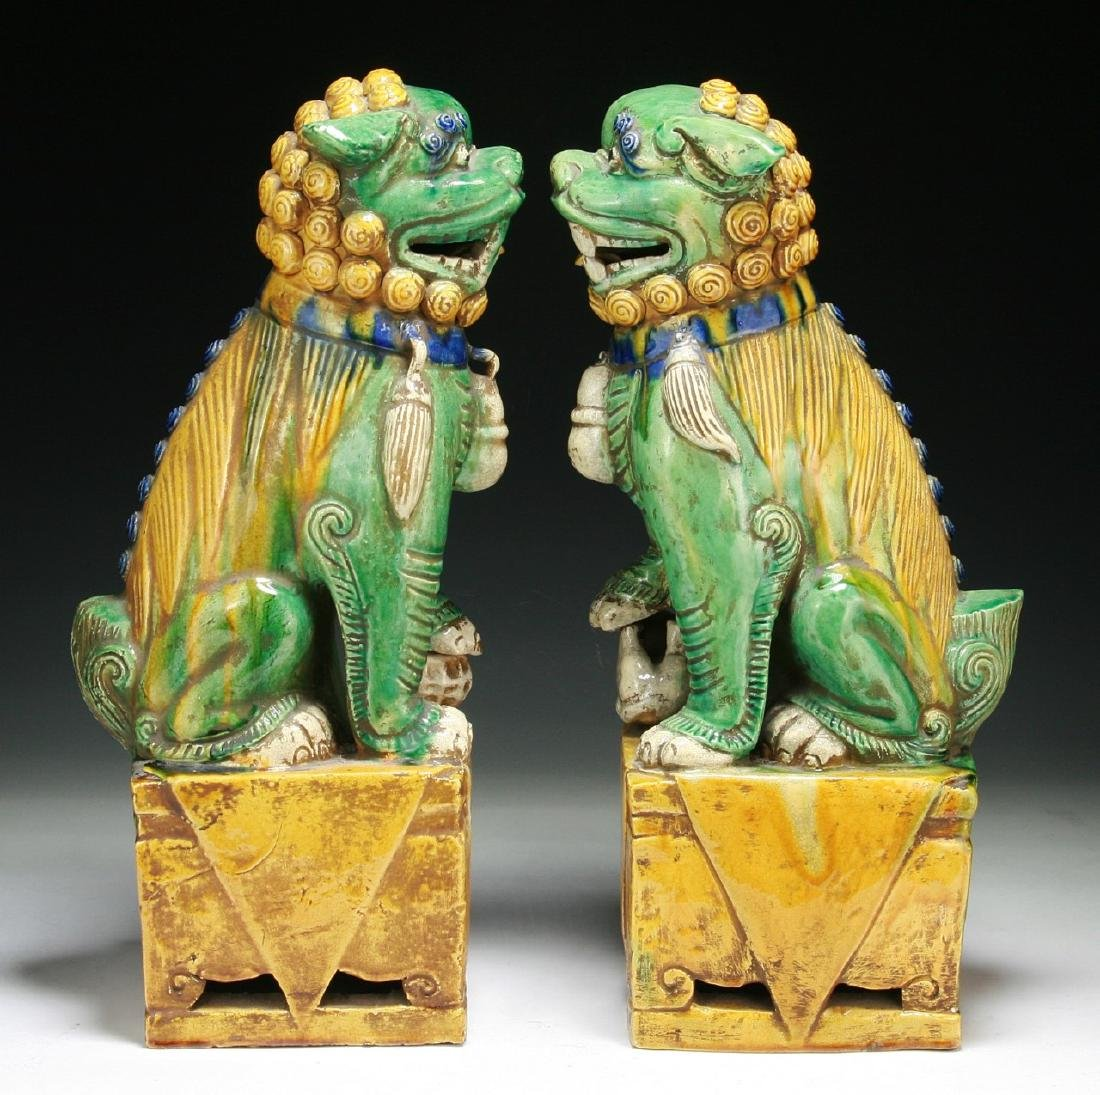 Pair of Chinese Famille Noire Porcelain Lions - 2